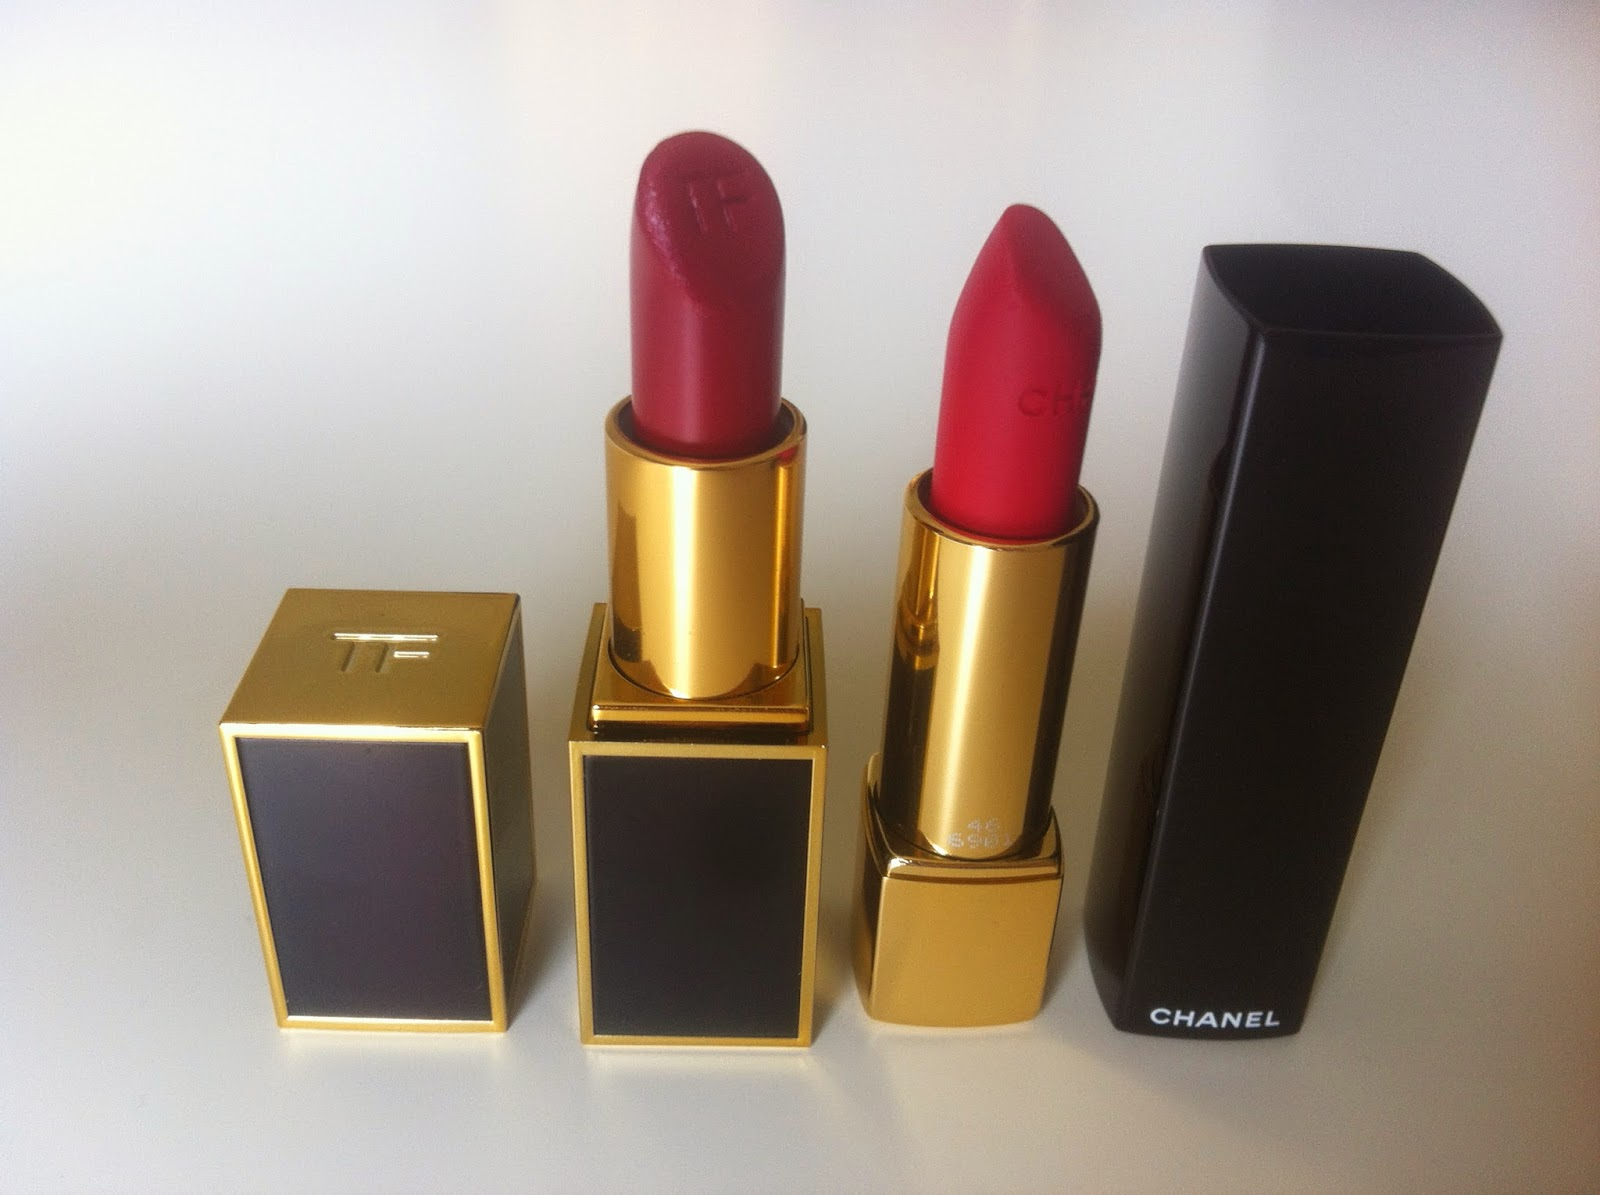 tag the lip products addict, tom ford lipstick vampire's kiss, chanel rouge allure velvet la malicieuse